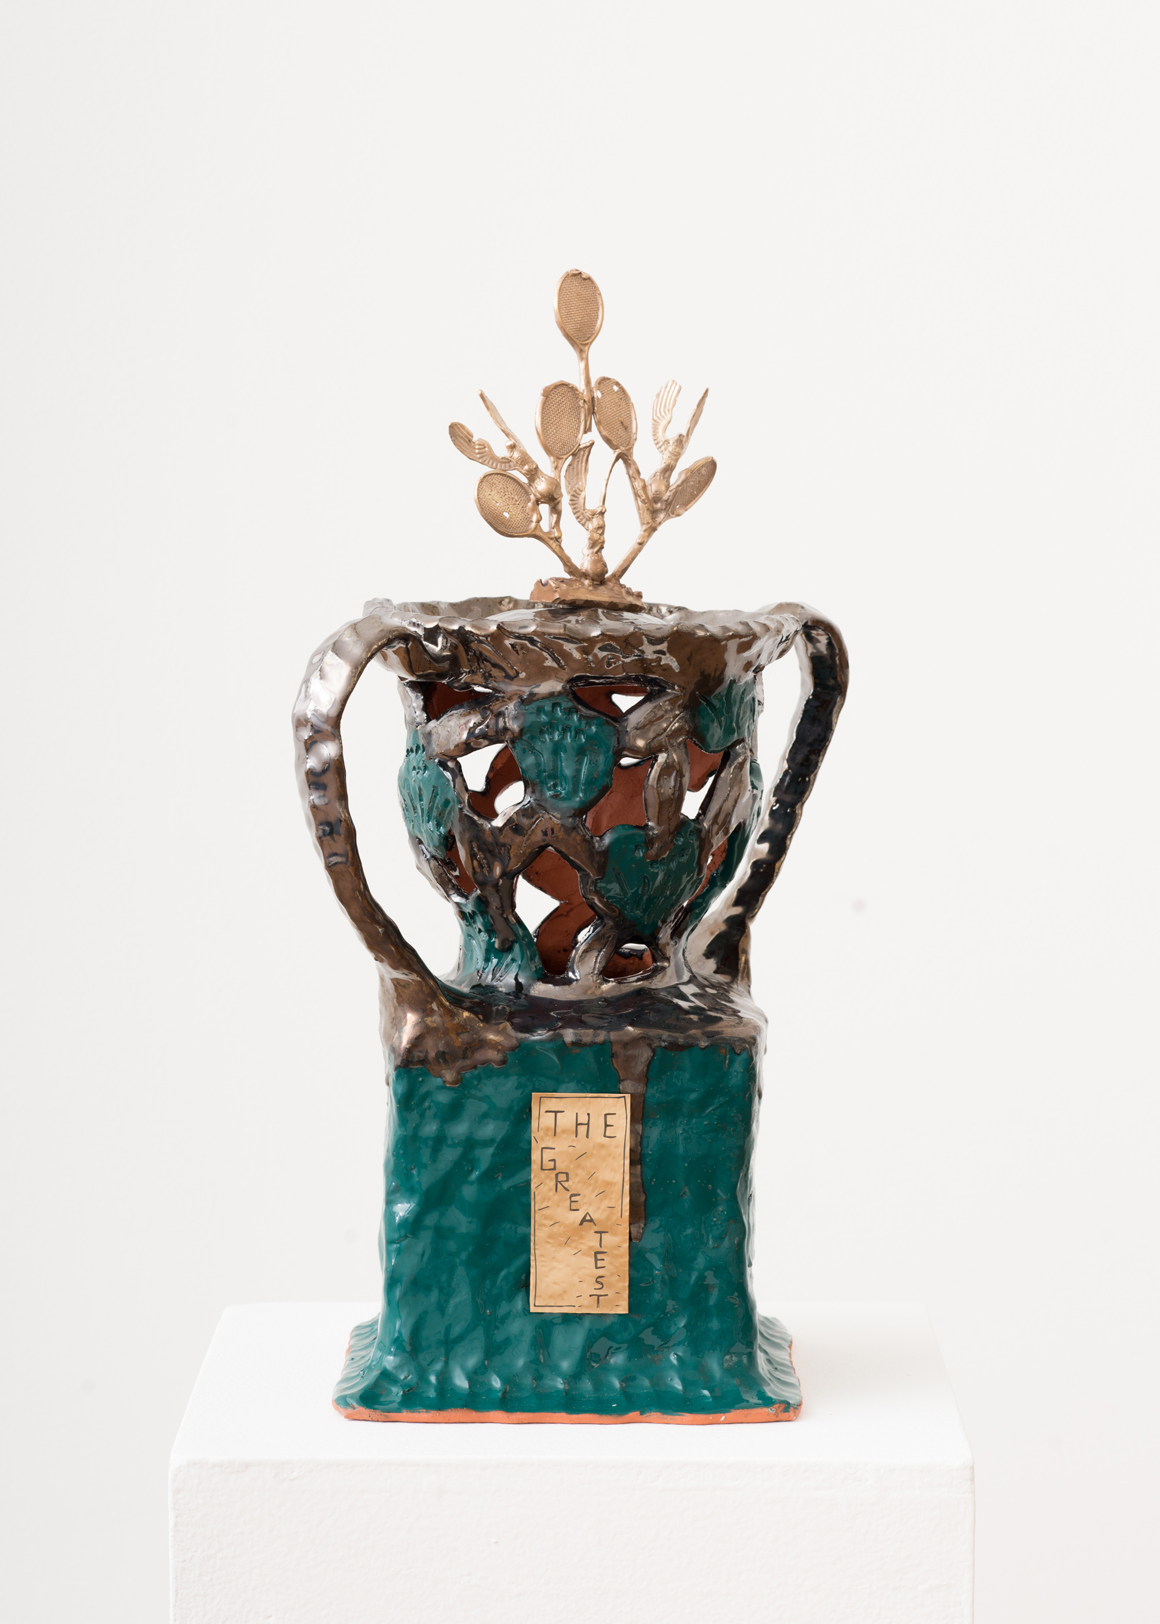 <p><em>Trophy (the greatest)</em><span class='media'>Ceramic, glaze, bronze, brass</span>18 x 9.5 x 9.5 in (45.7 x 24.1 x 24.1 cm)<br>2018<br><a class='inquire' href='mailto:info@gildargallery.com?subject=Artwork Inquiry SKAN0004&body=I am interested in finding out more about Trophy (the greatest) by Stephanie Kantor'>Inquire</a></p>